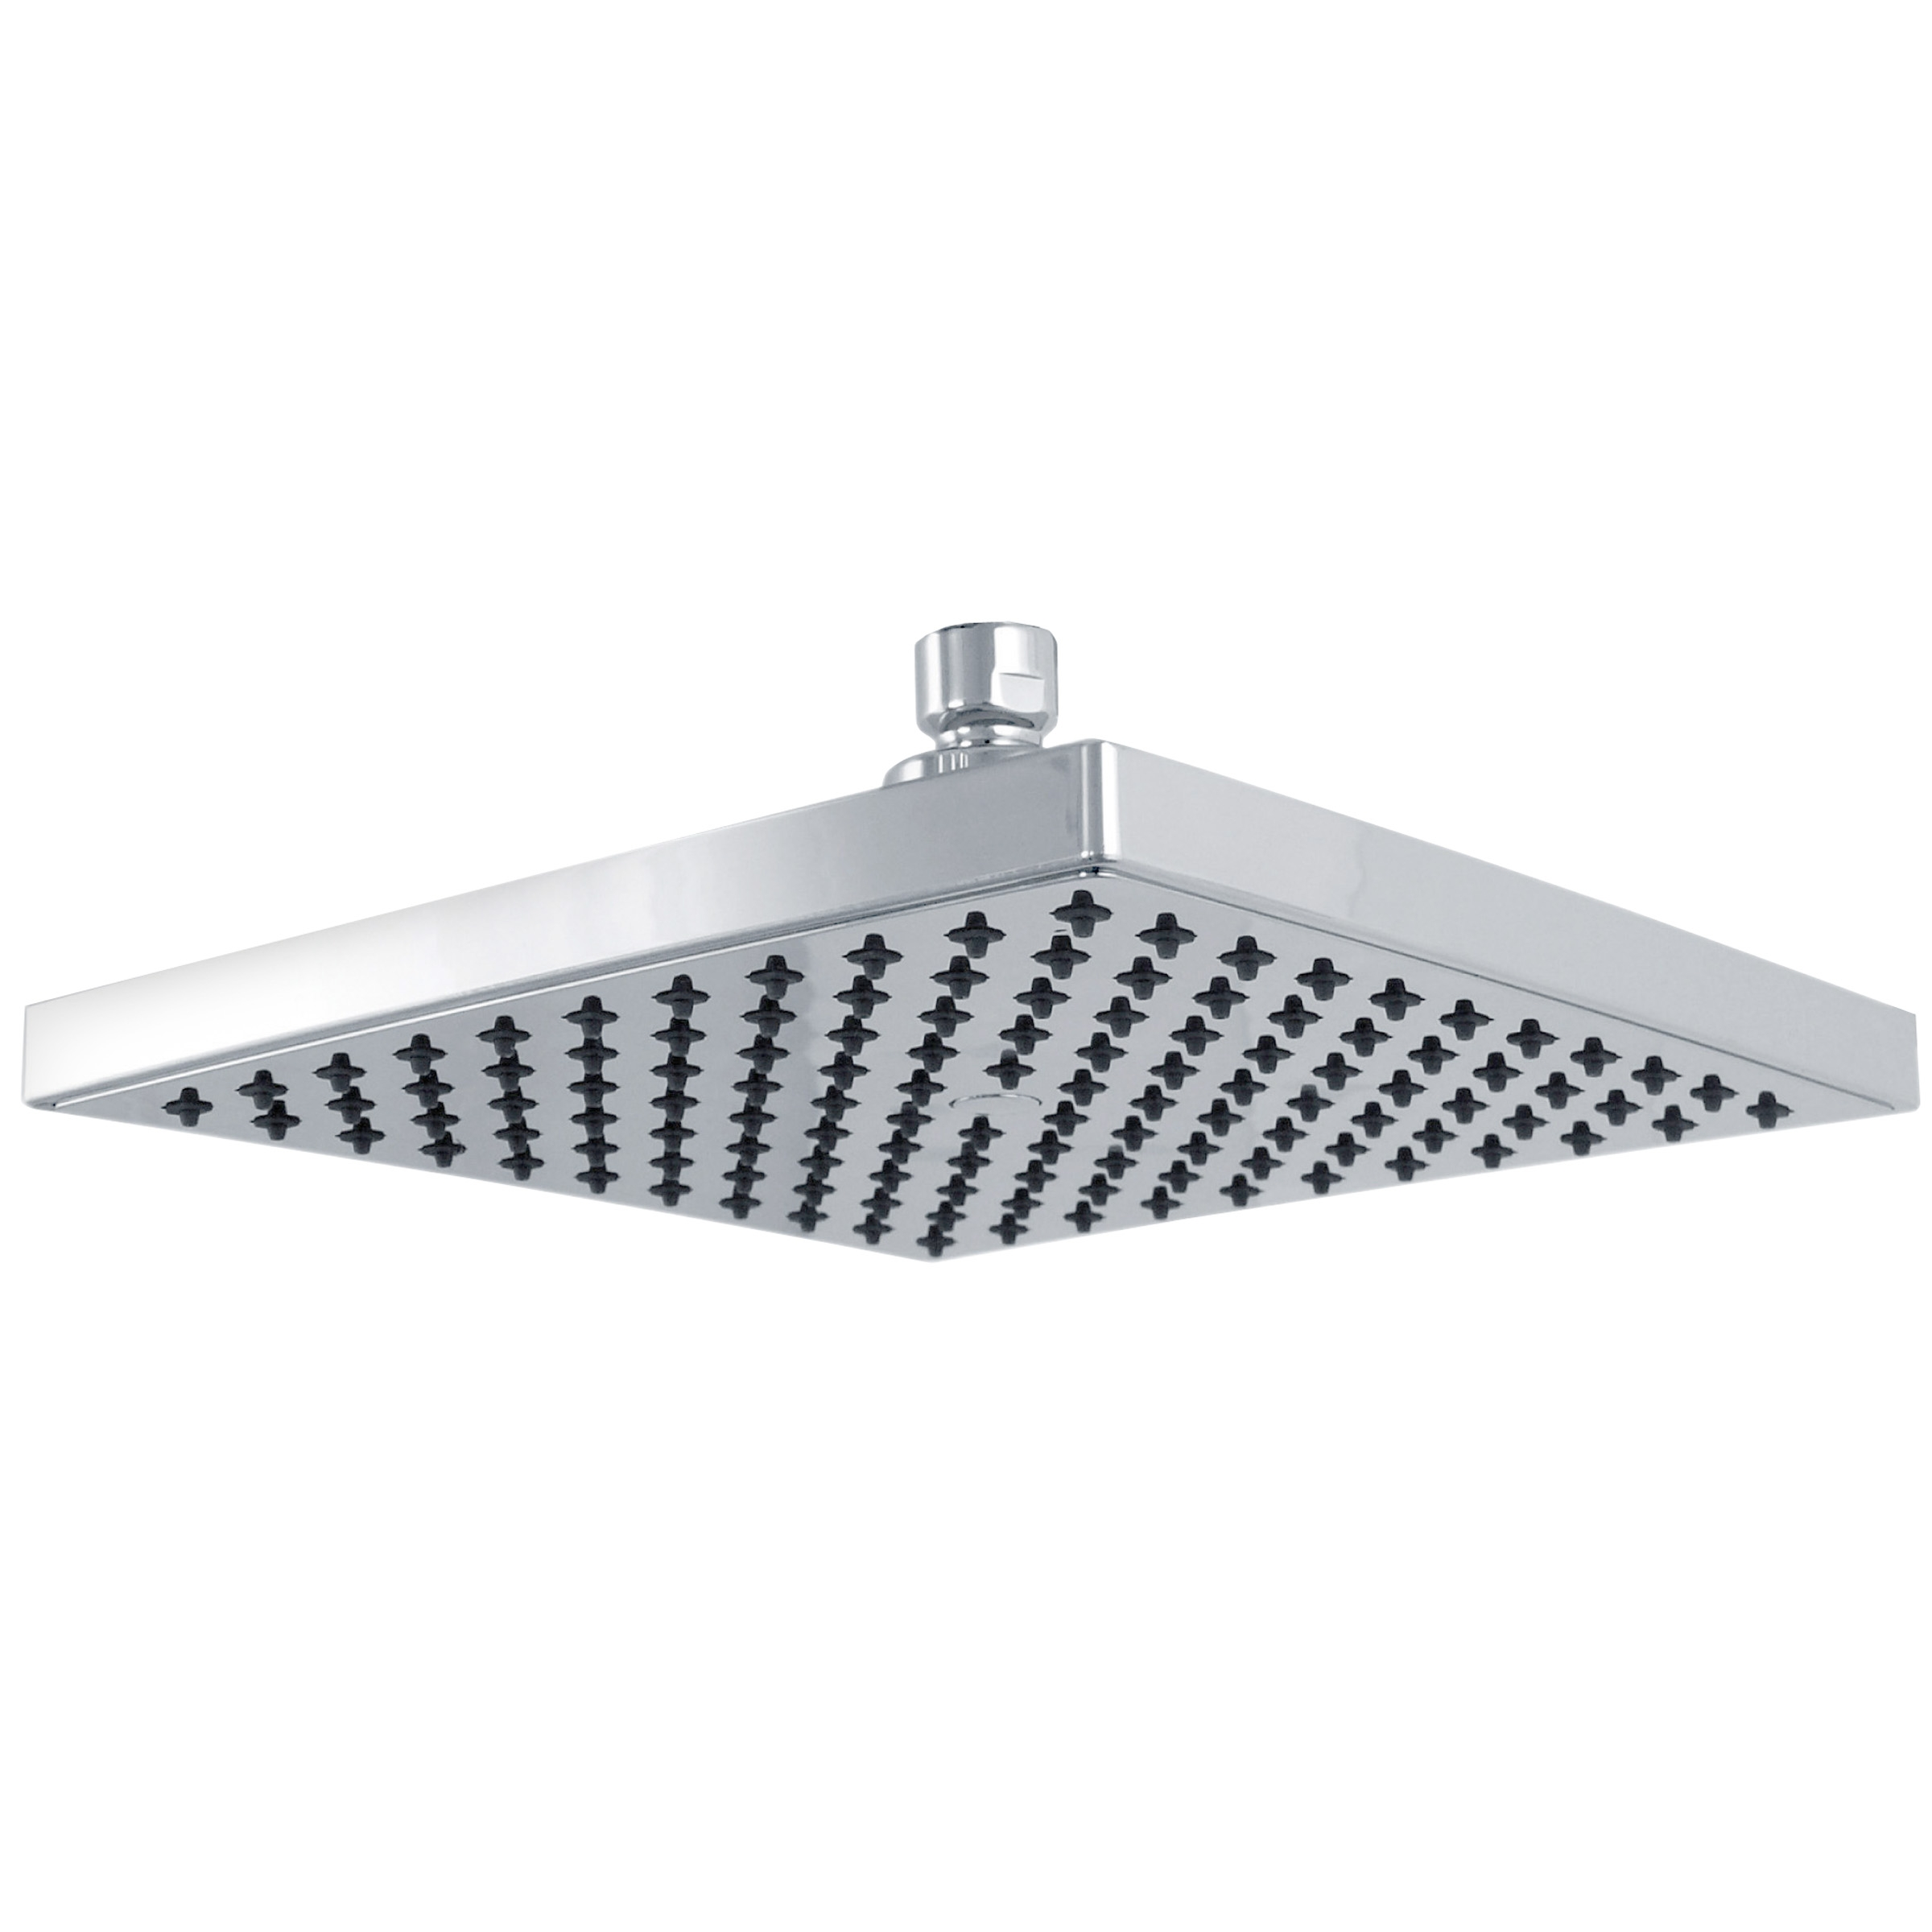 prod ceiling shower rectangular head built antonio lupi with waterfall in product mounted light